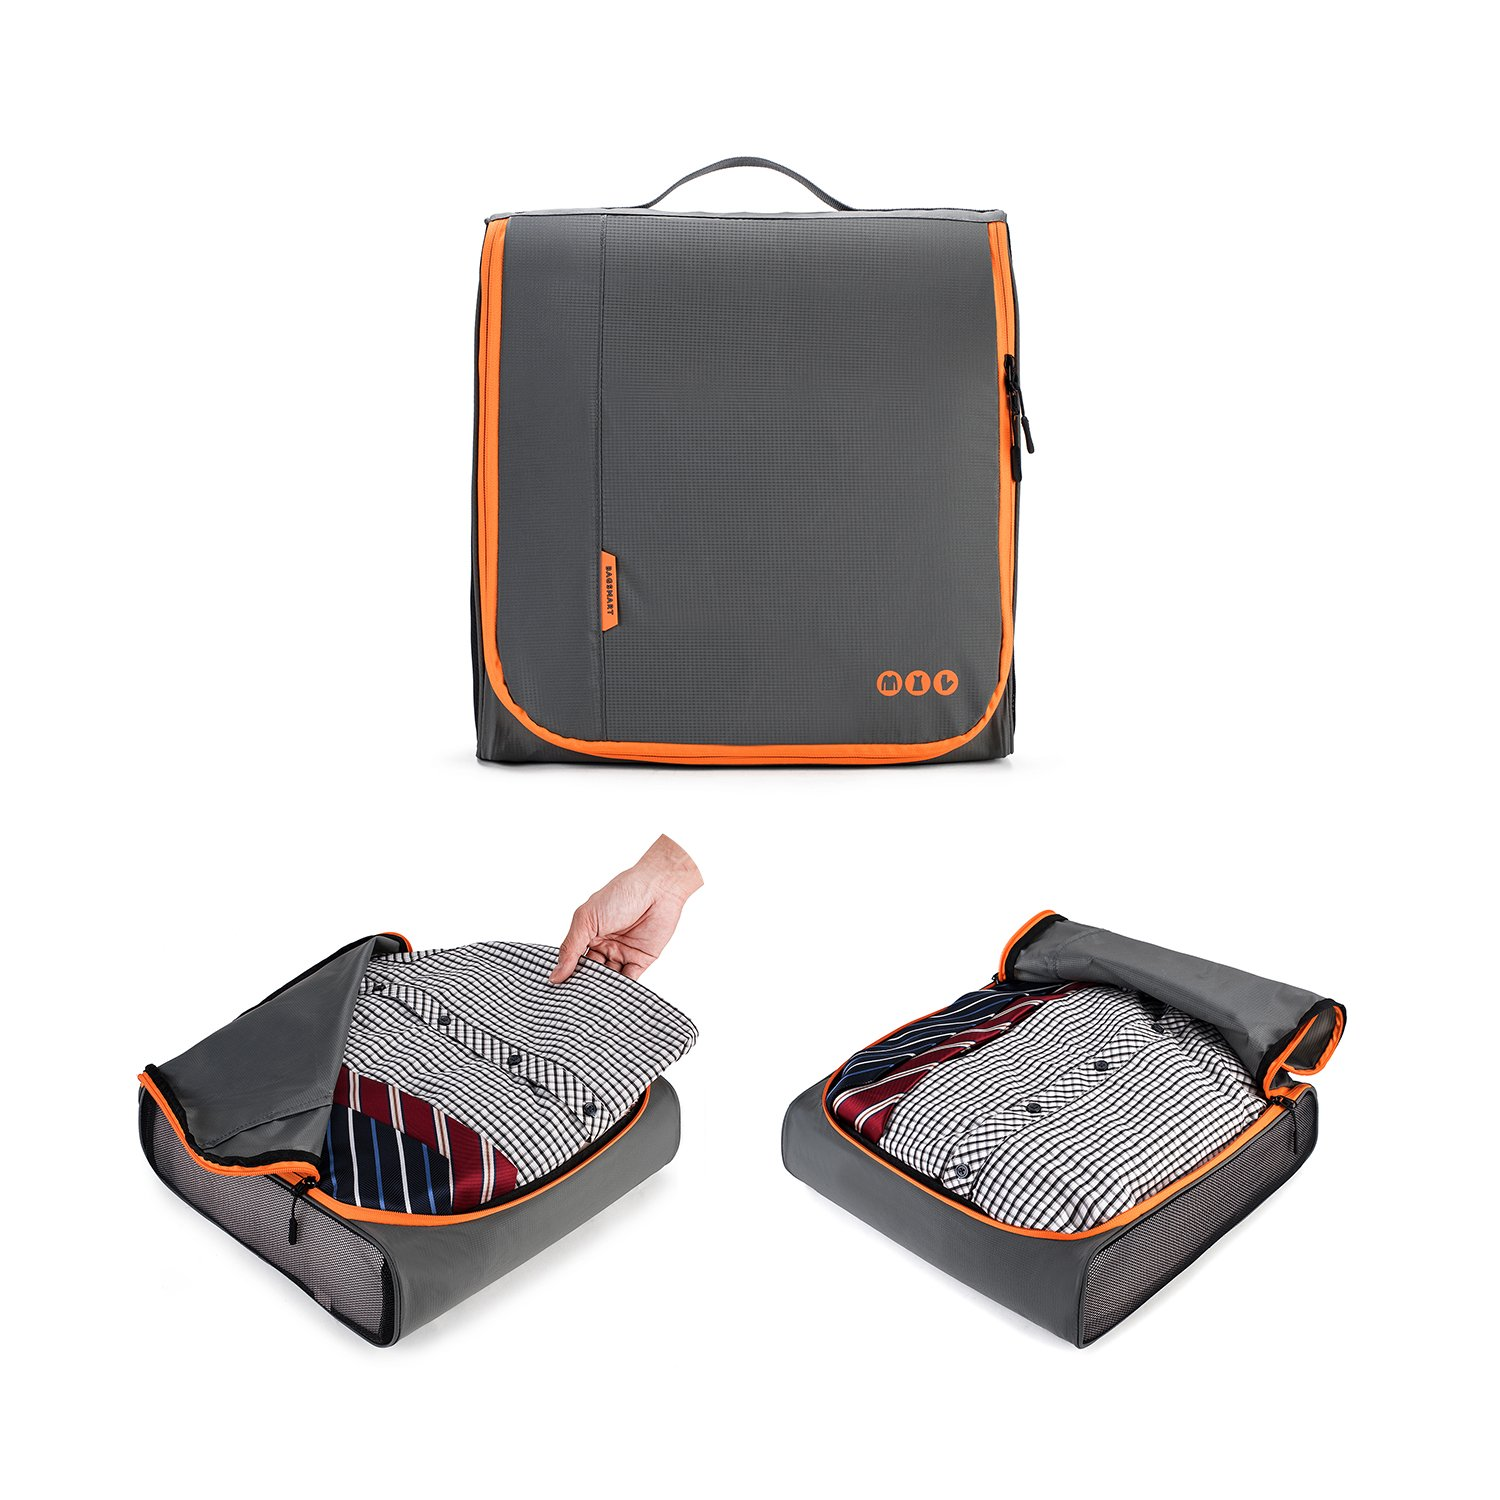 BAGSMART 6 Sets Packing Cubes 3 Sizes Portable Travel Luggage Organizer for Carry-on Accessories by BAGSMART (Image #4)